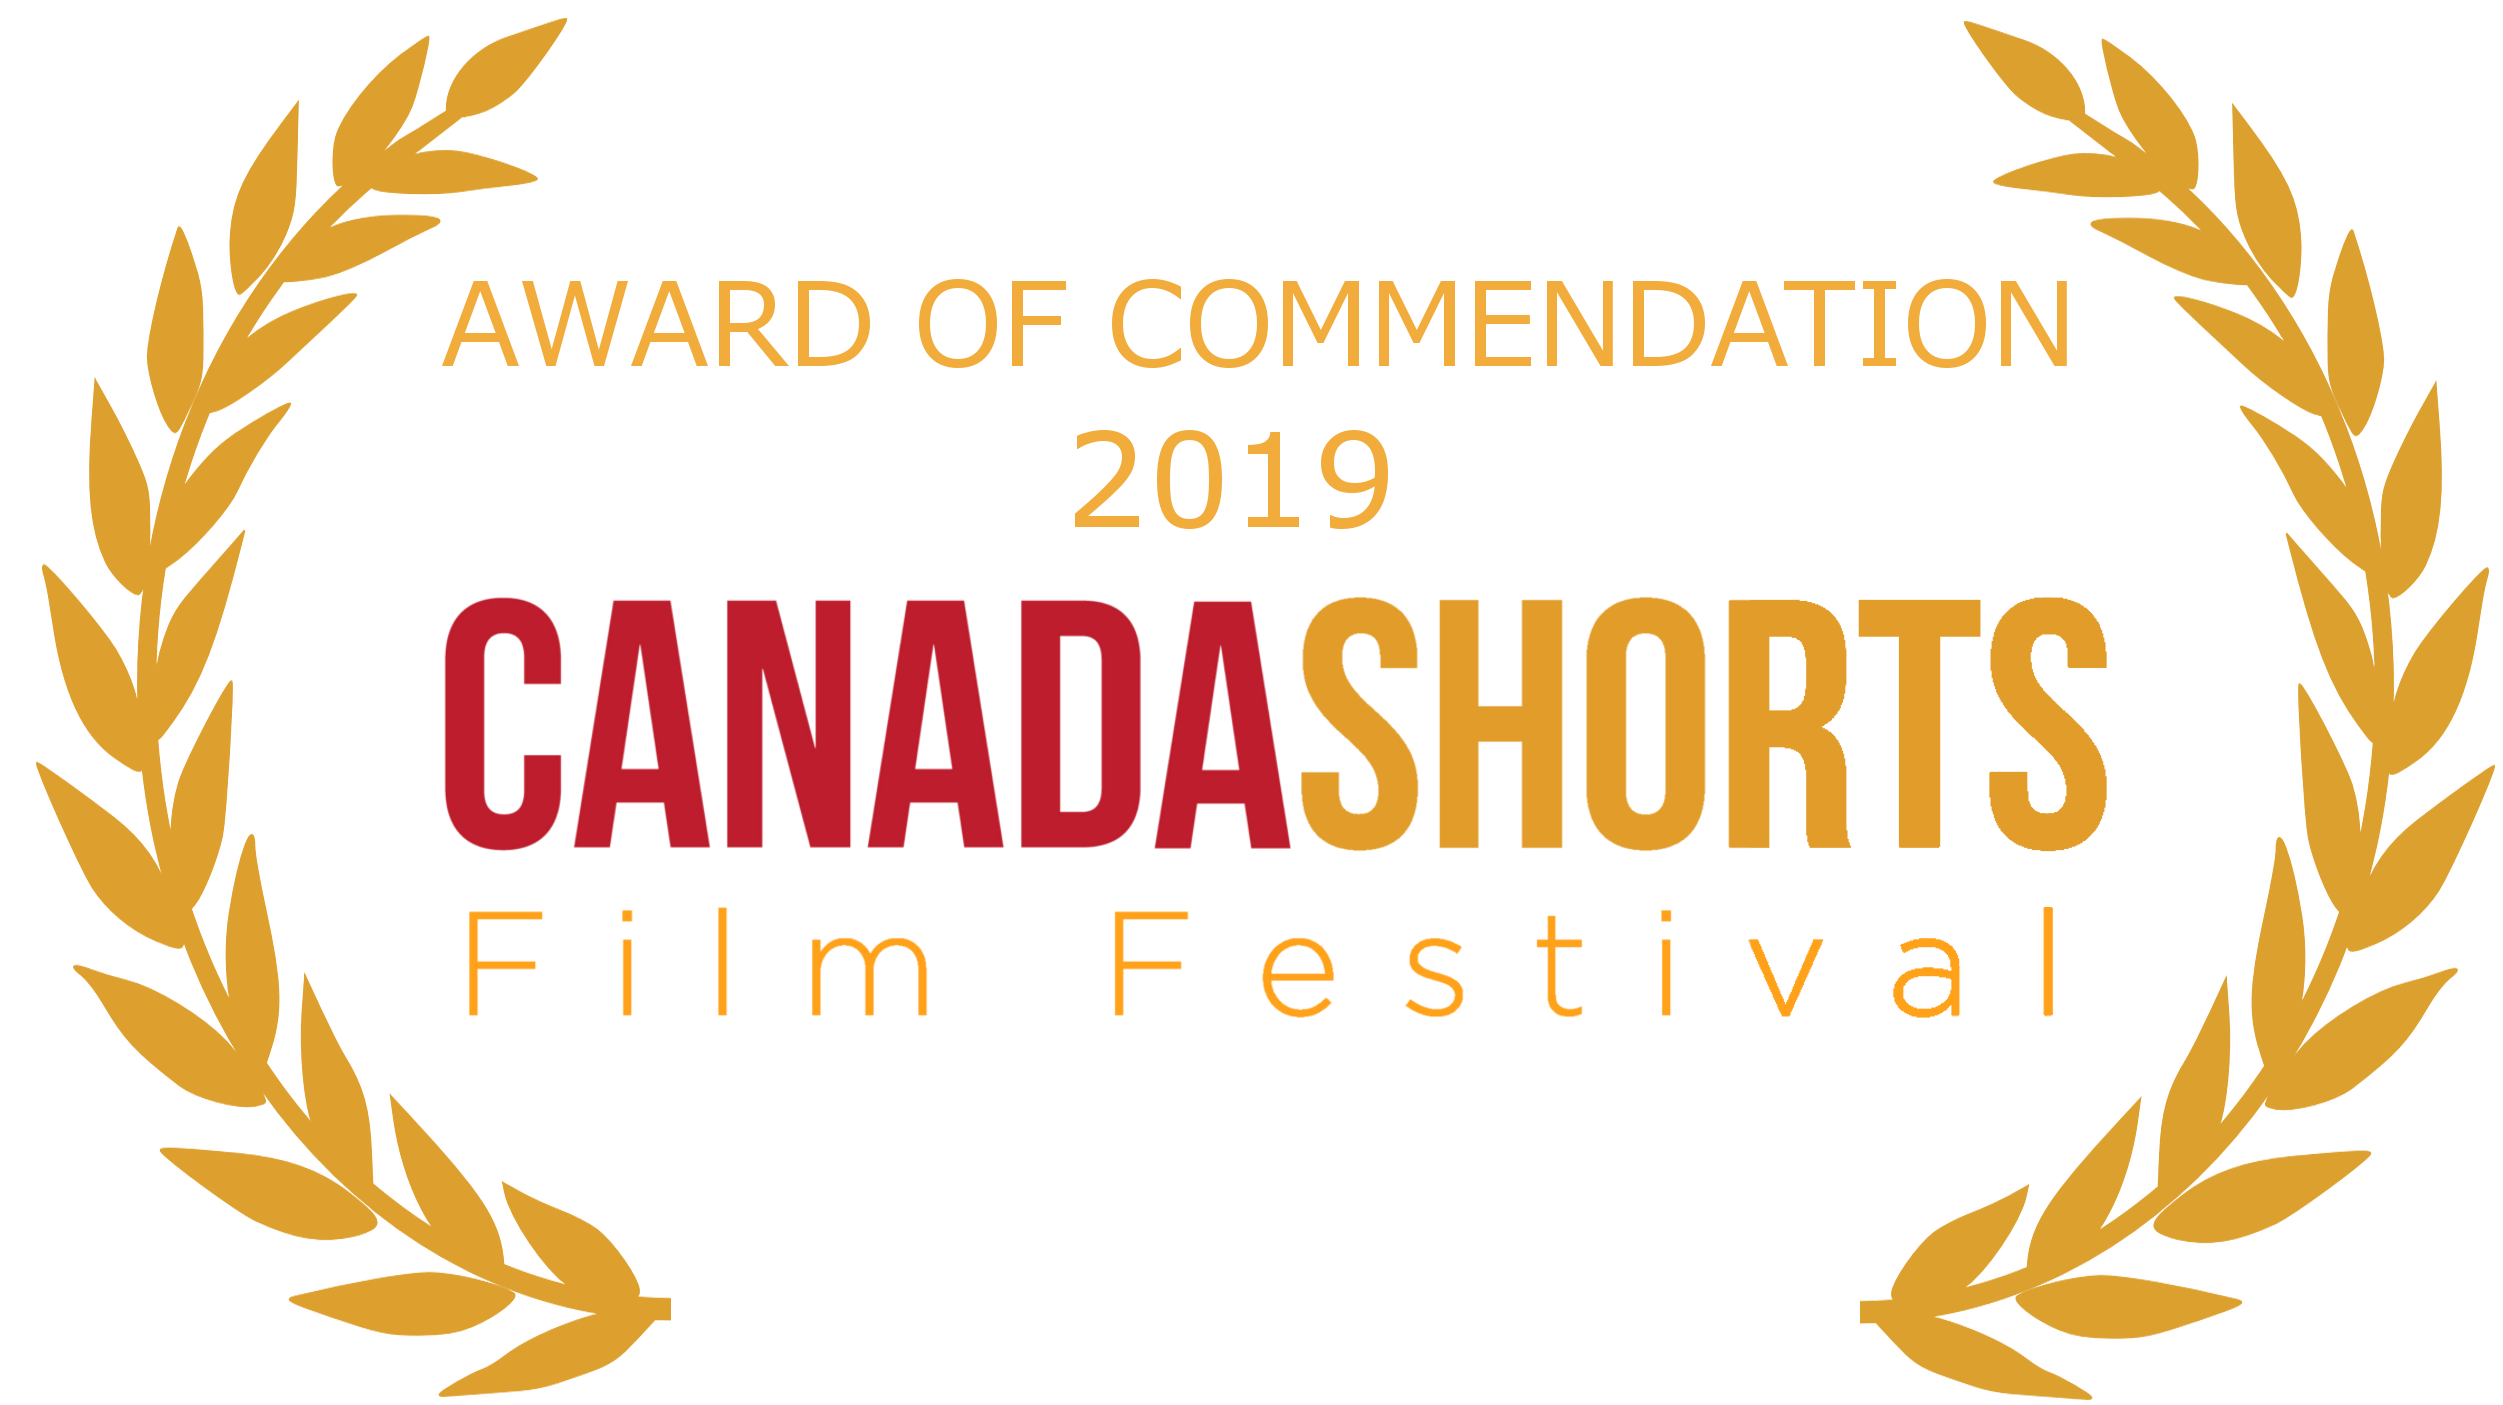 Laurel for Award of Commendation from Canada Shorts 2019